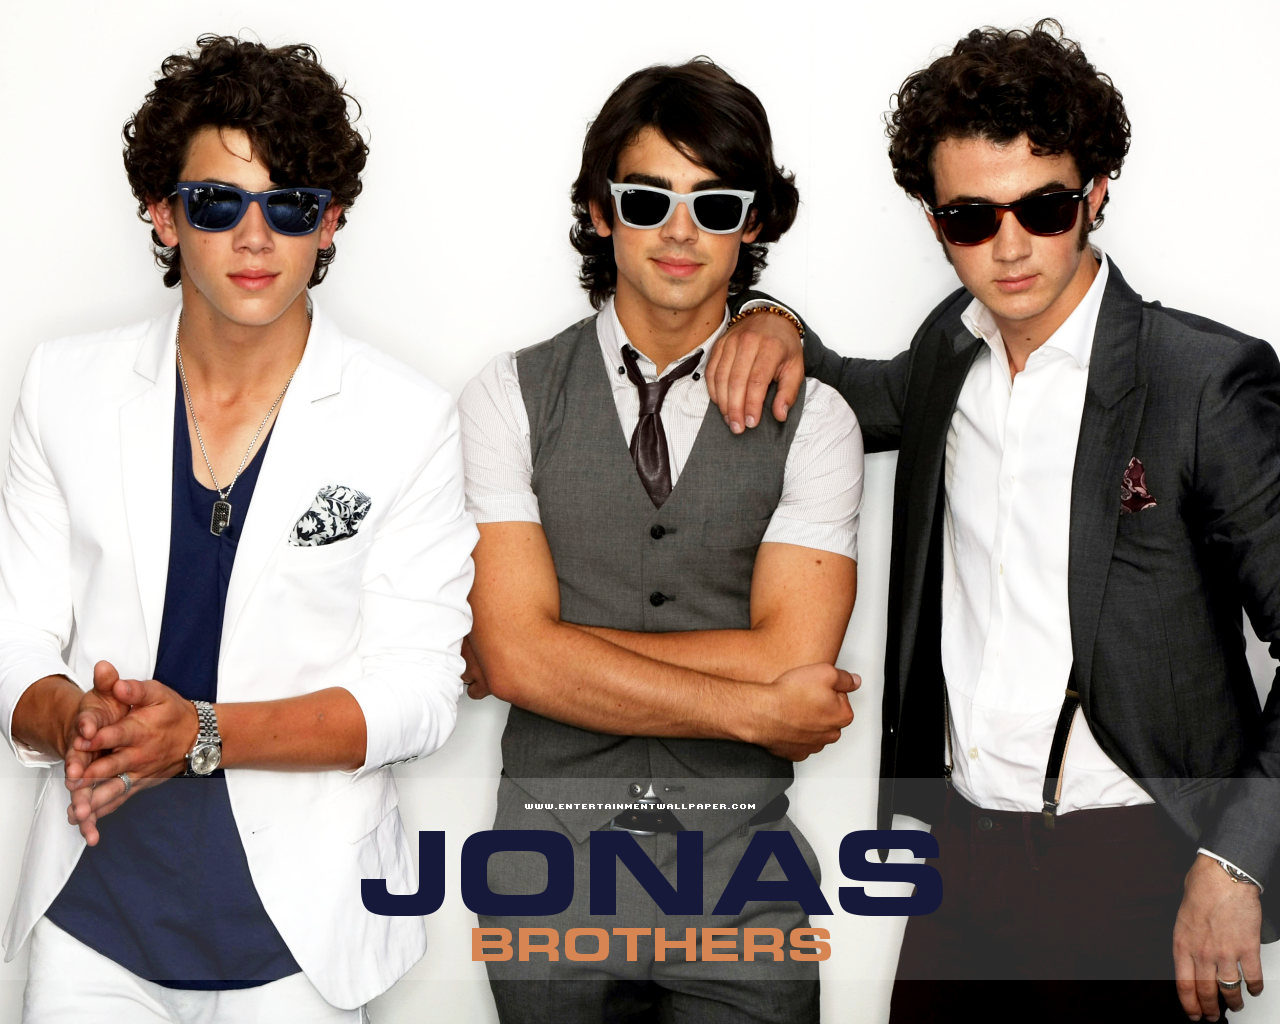 Viorione discography september 2010 - Jonas brothers blogspot ...